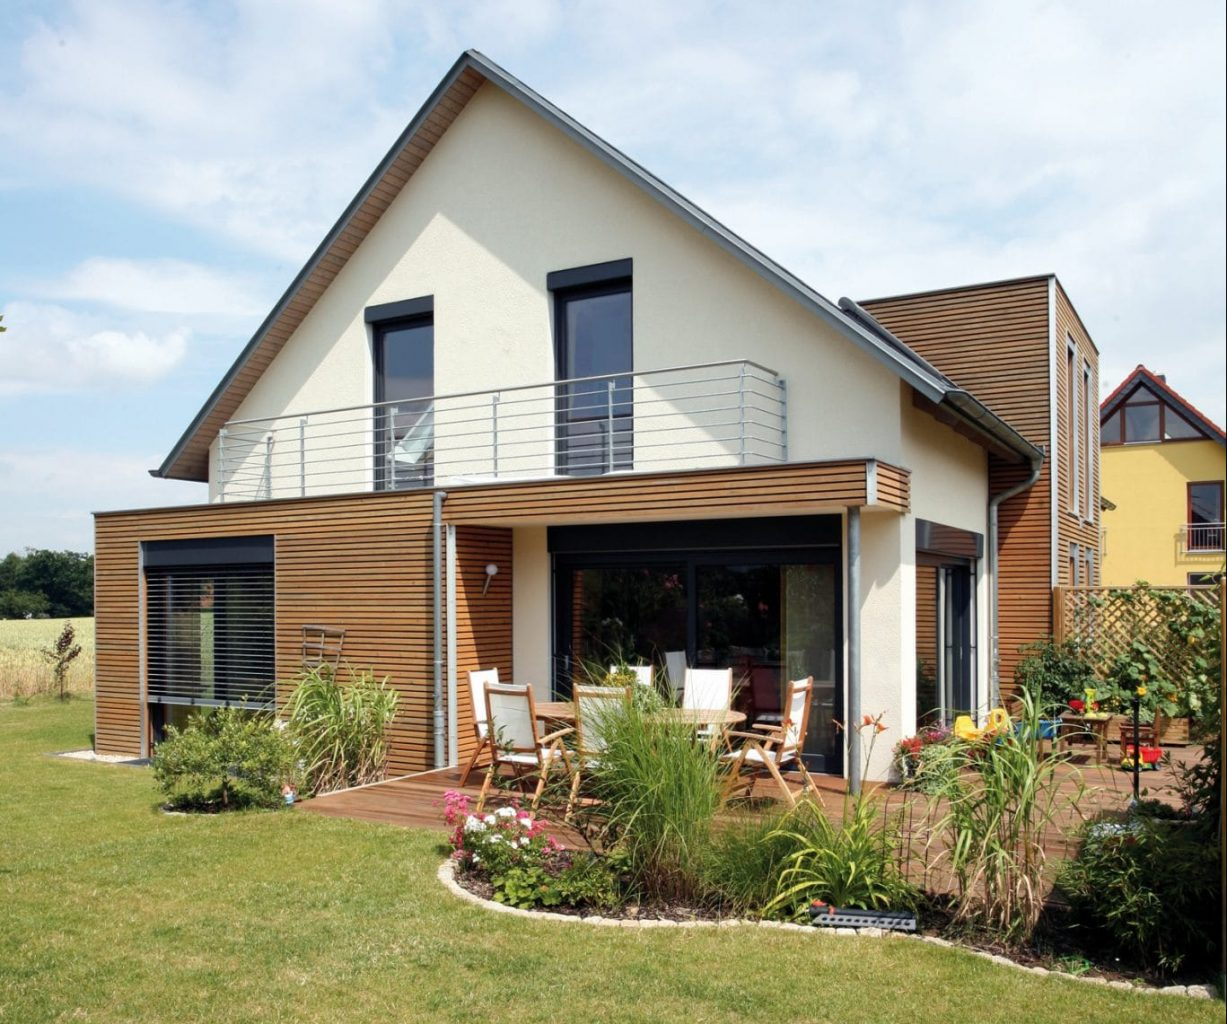 extension maison Bourg-en-Bresse : extension bois